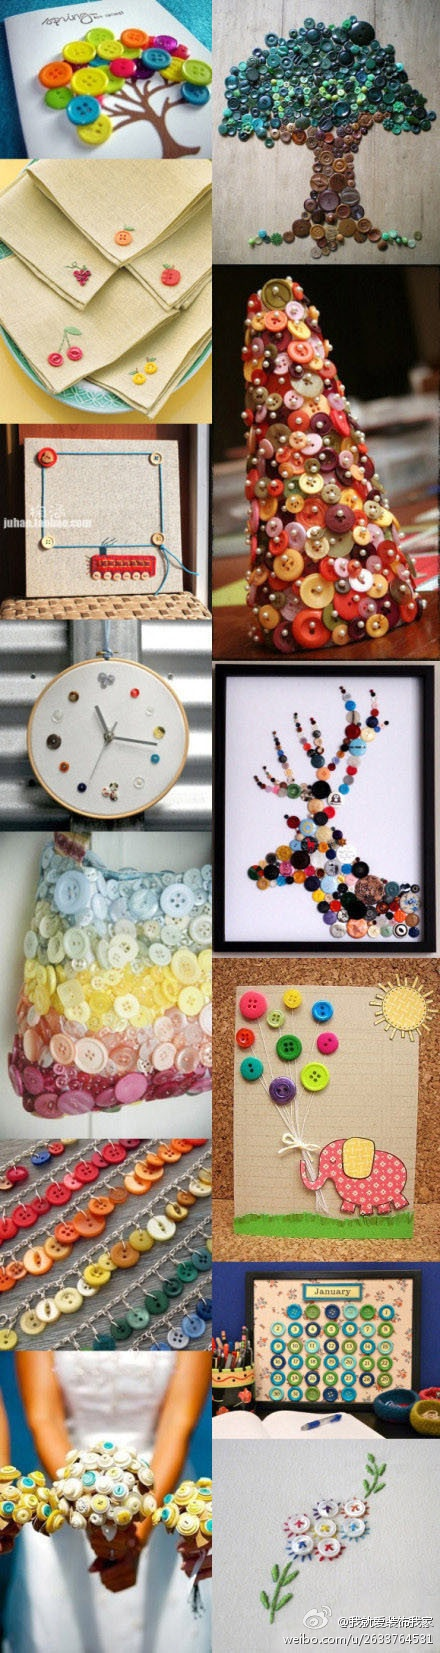 Manualidades con botones: Buttoncrafts, Button, Button Art, Buttons Buttons, Button Projects, Button Crafts, Button Ideas, Craft Ideas, Diy